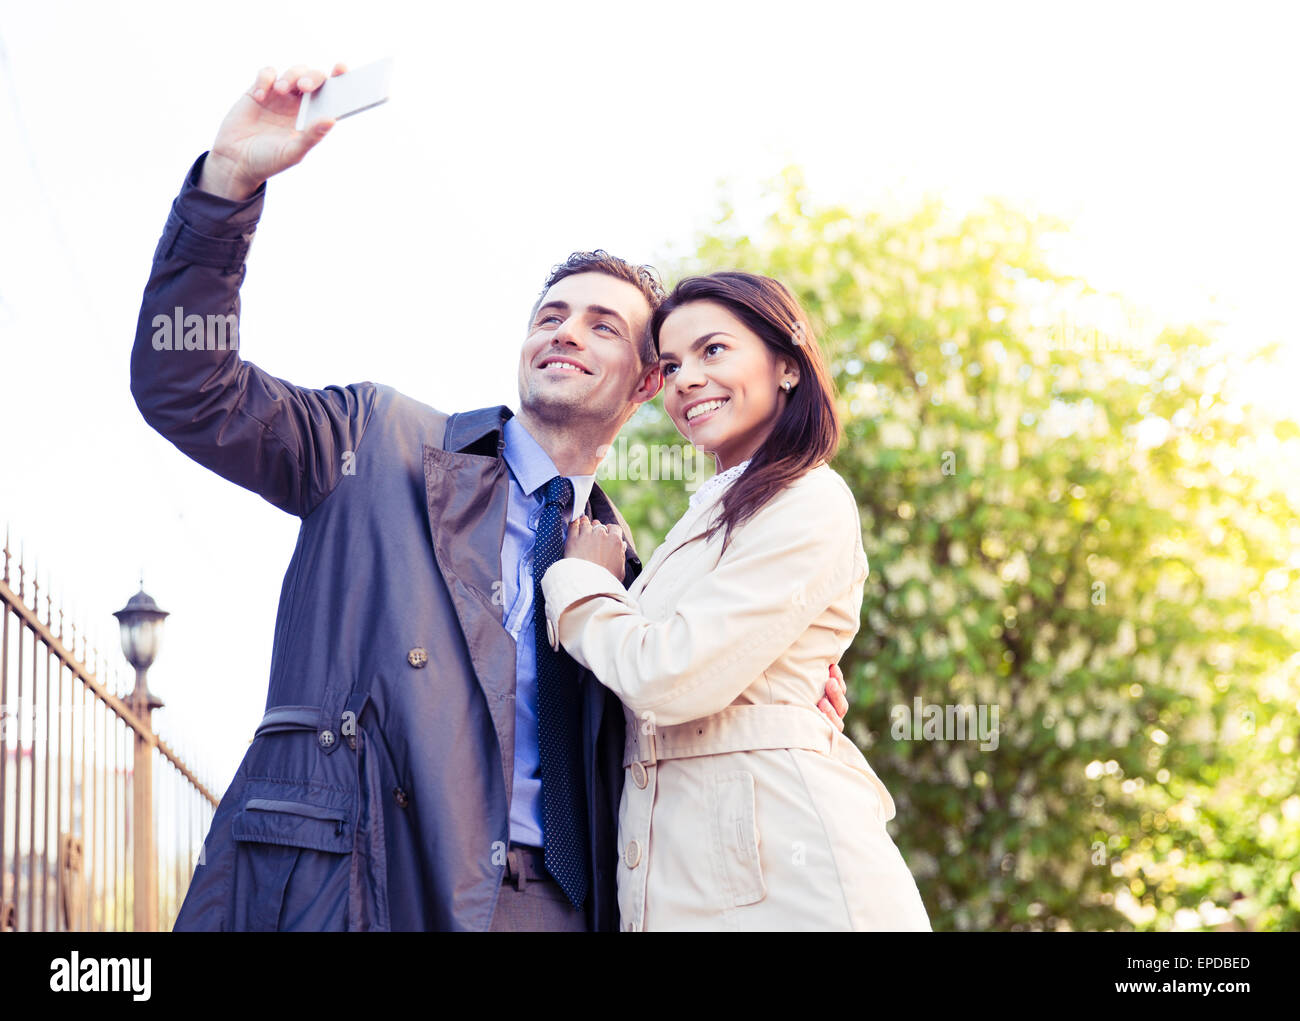 Happy young couple making selfie photo on smartphone outdoors Stock Photo